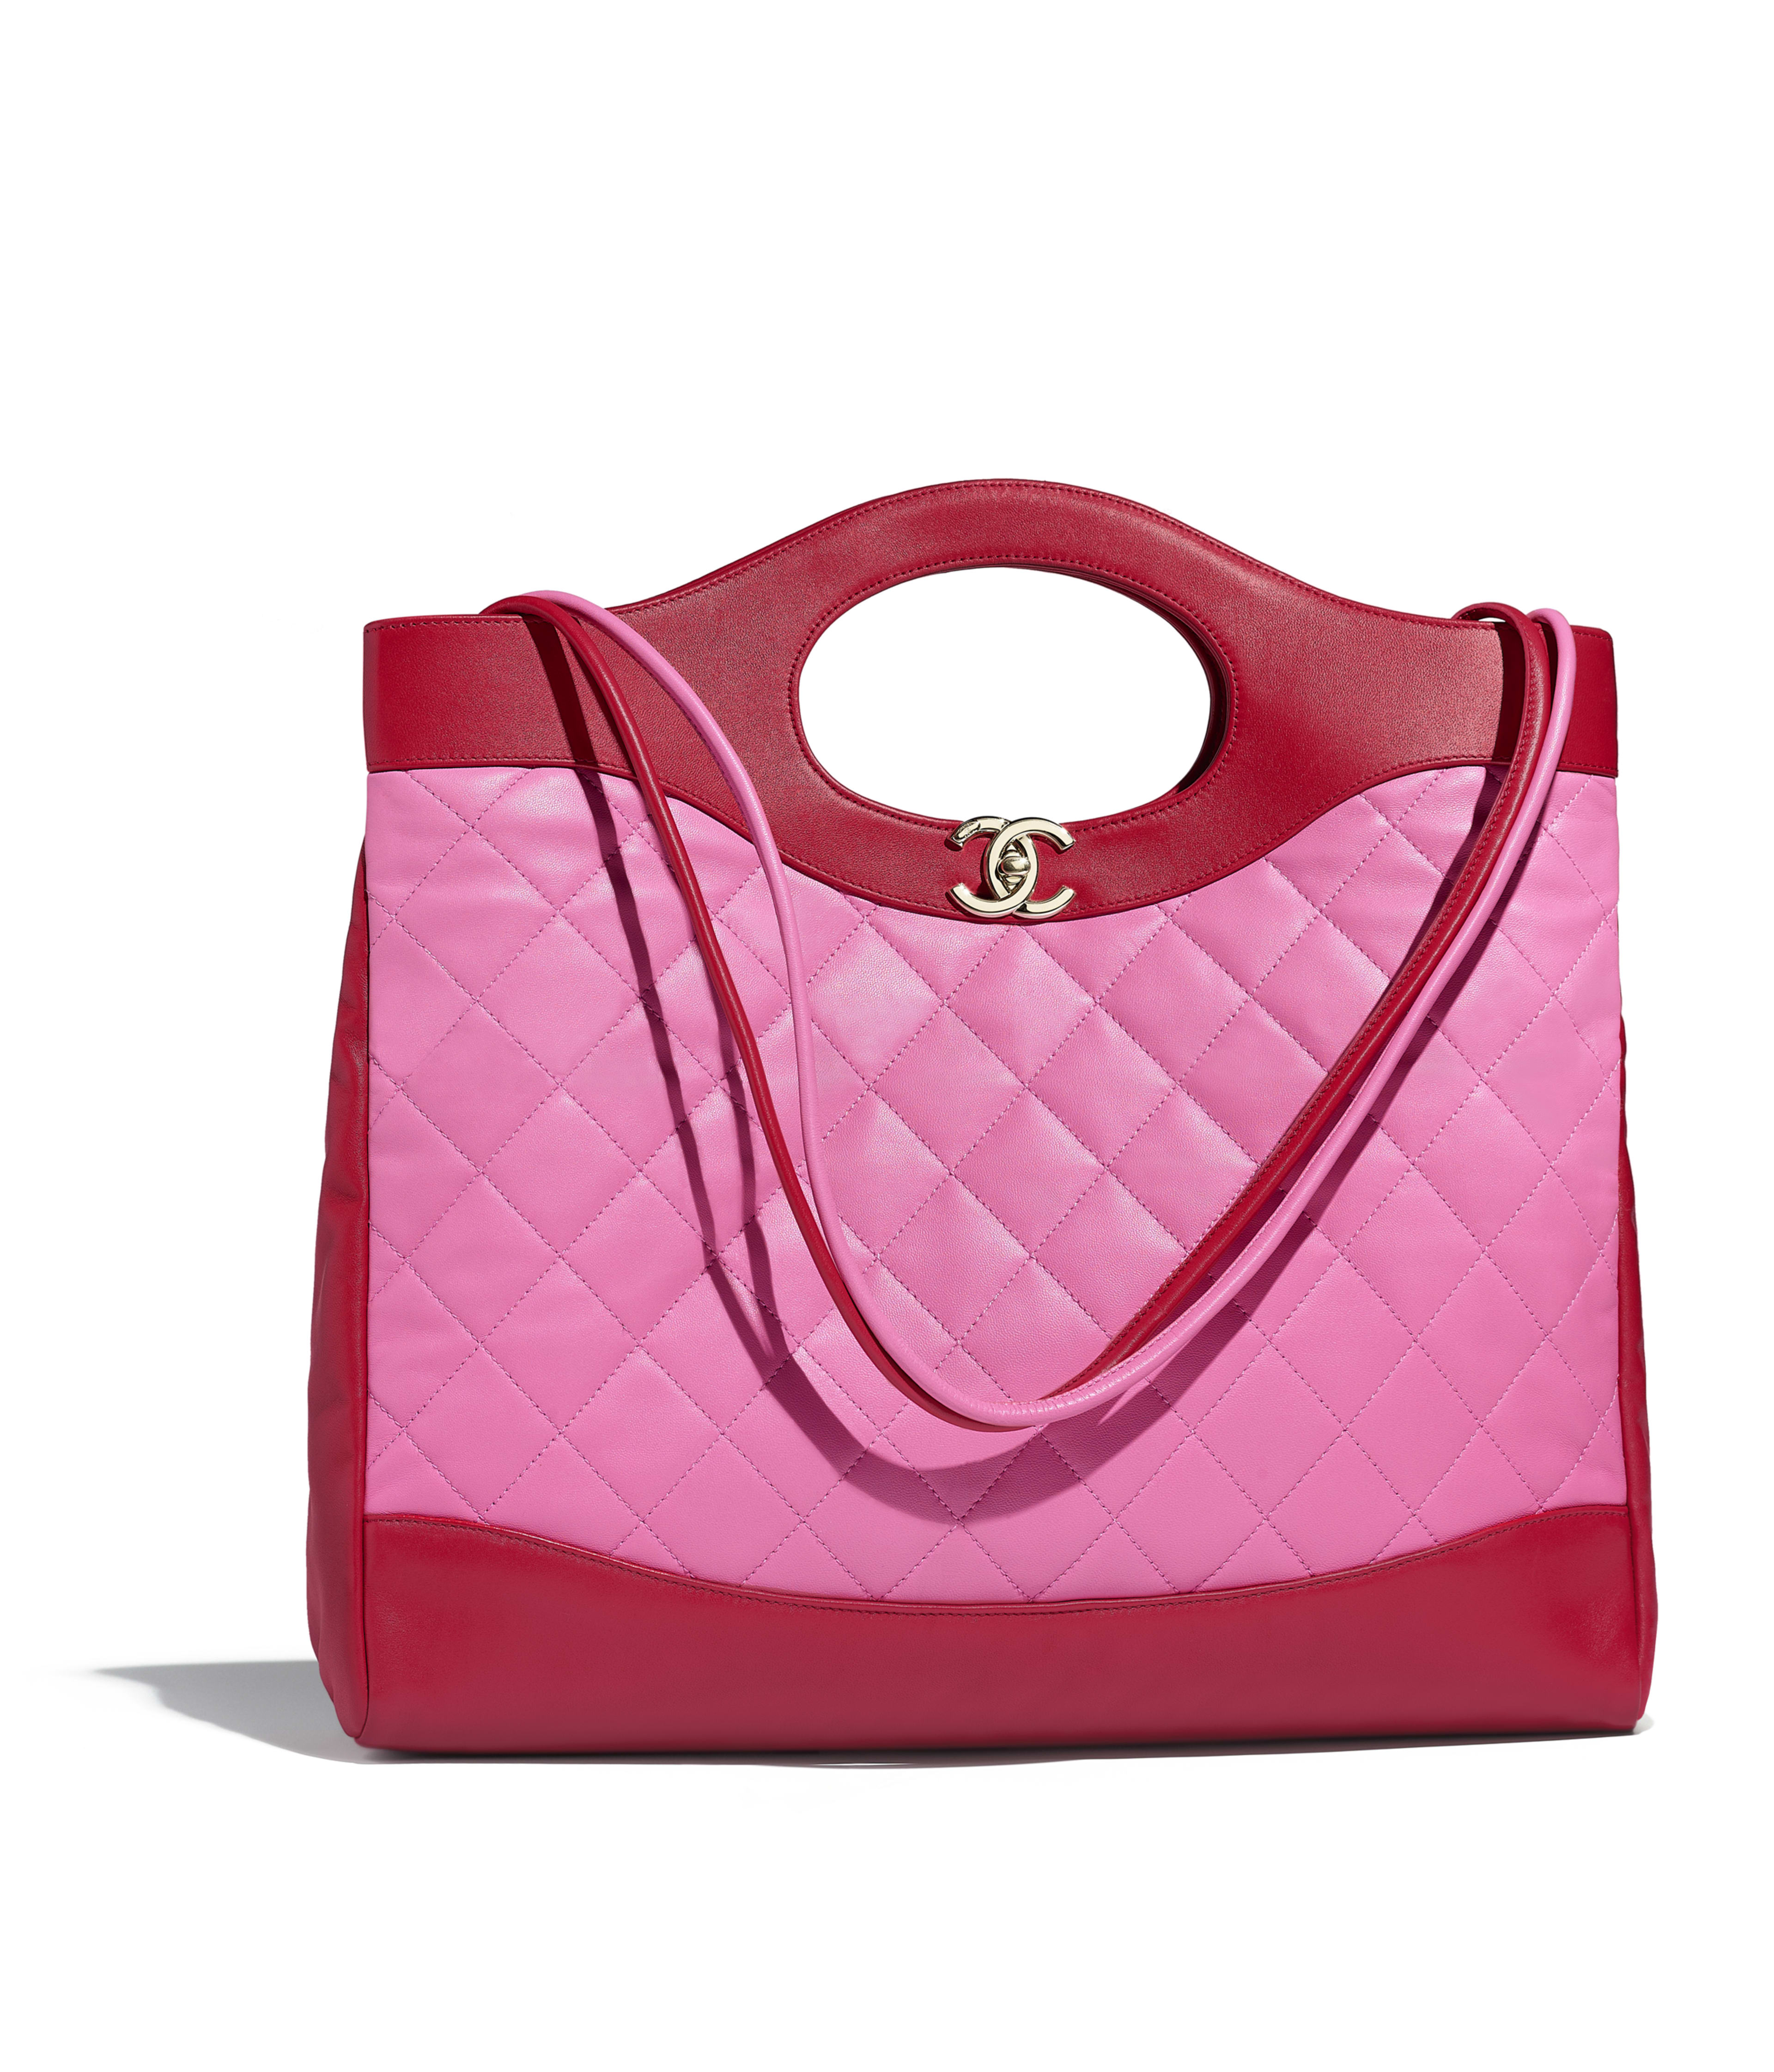 Chanel 31 Large Ping Bag Lambskin Gold Tone Metal Red Pink Ref A57977y83999k1172